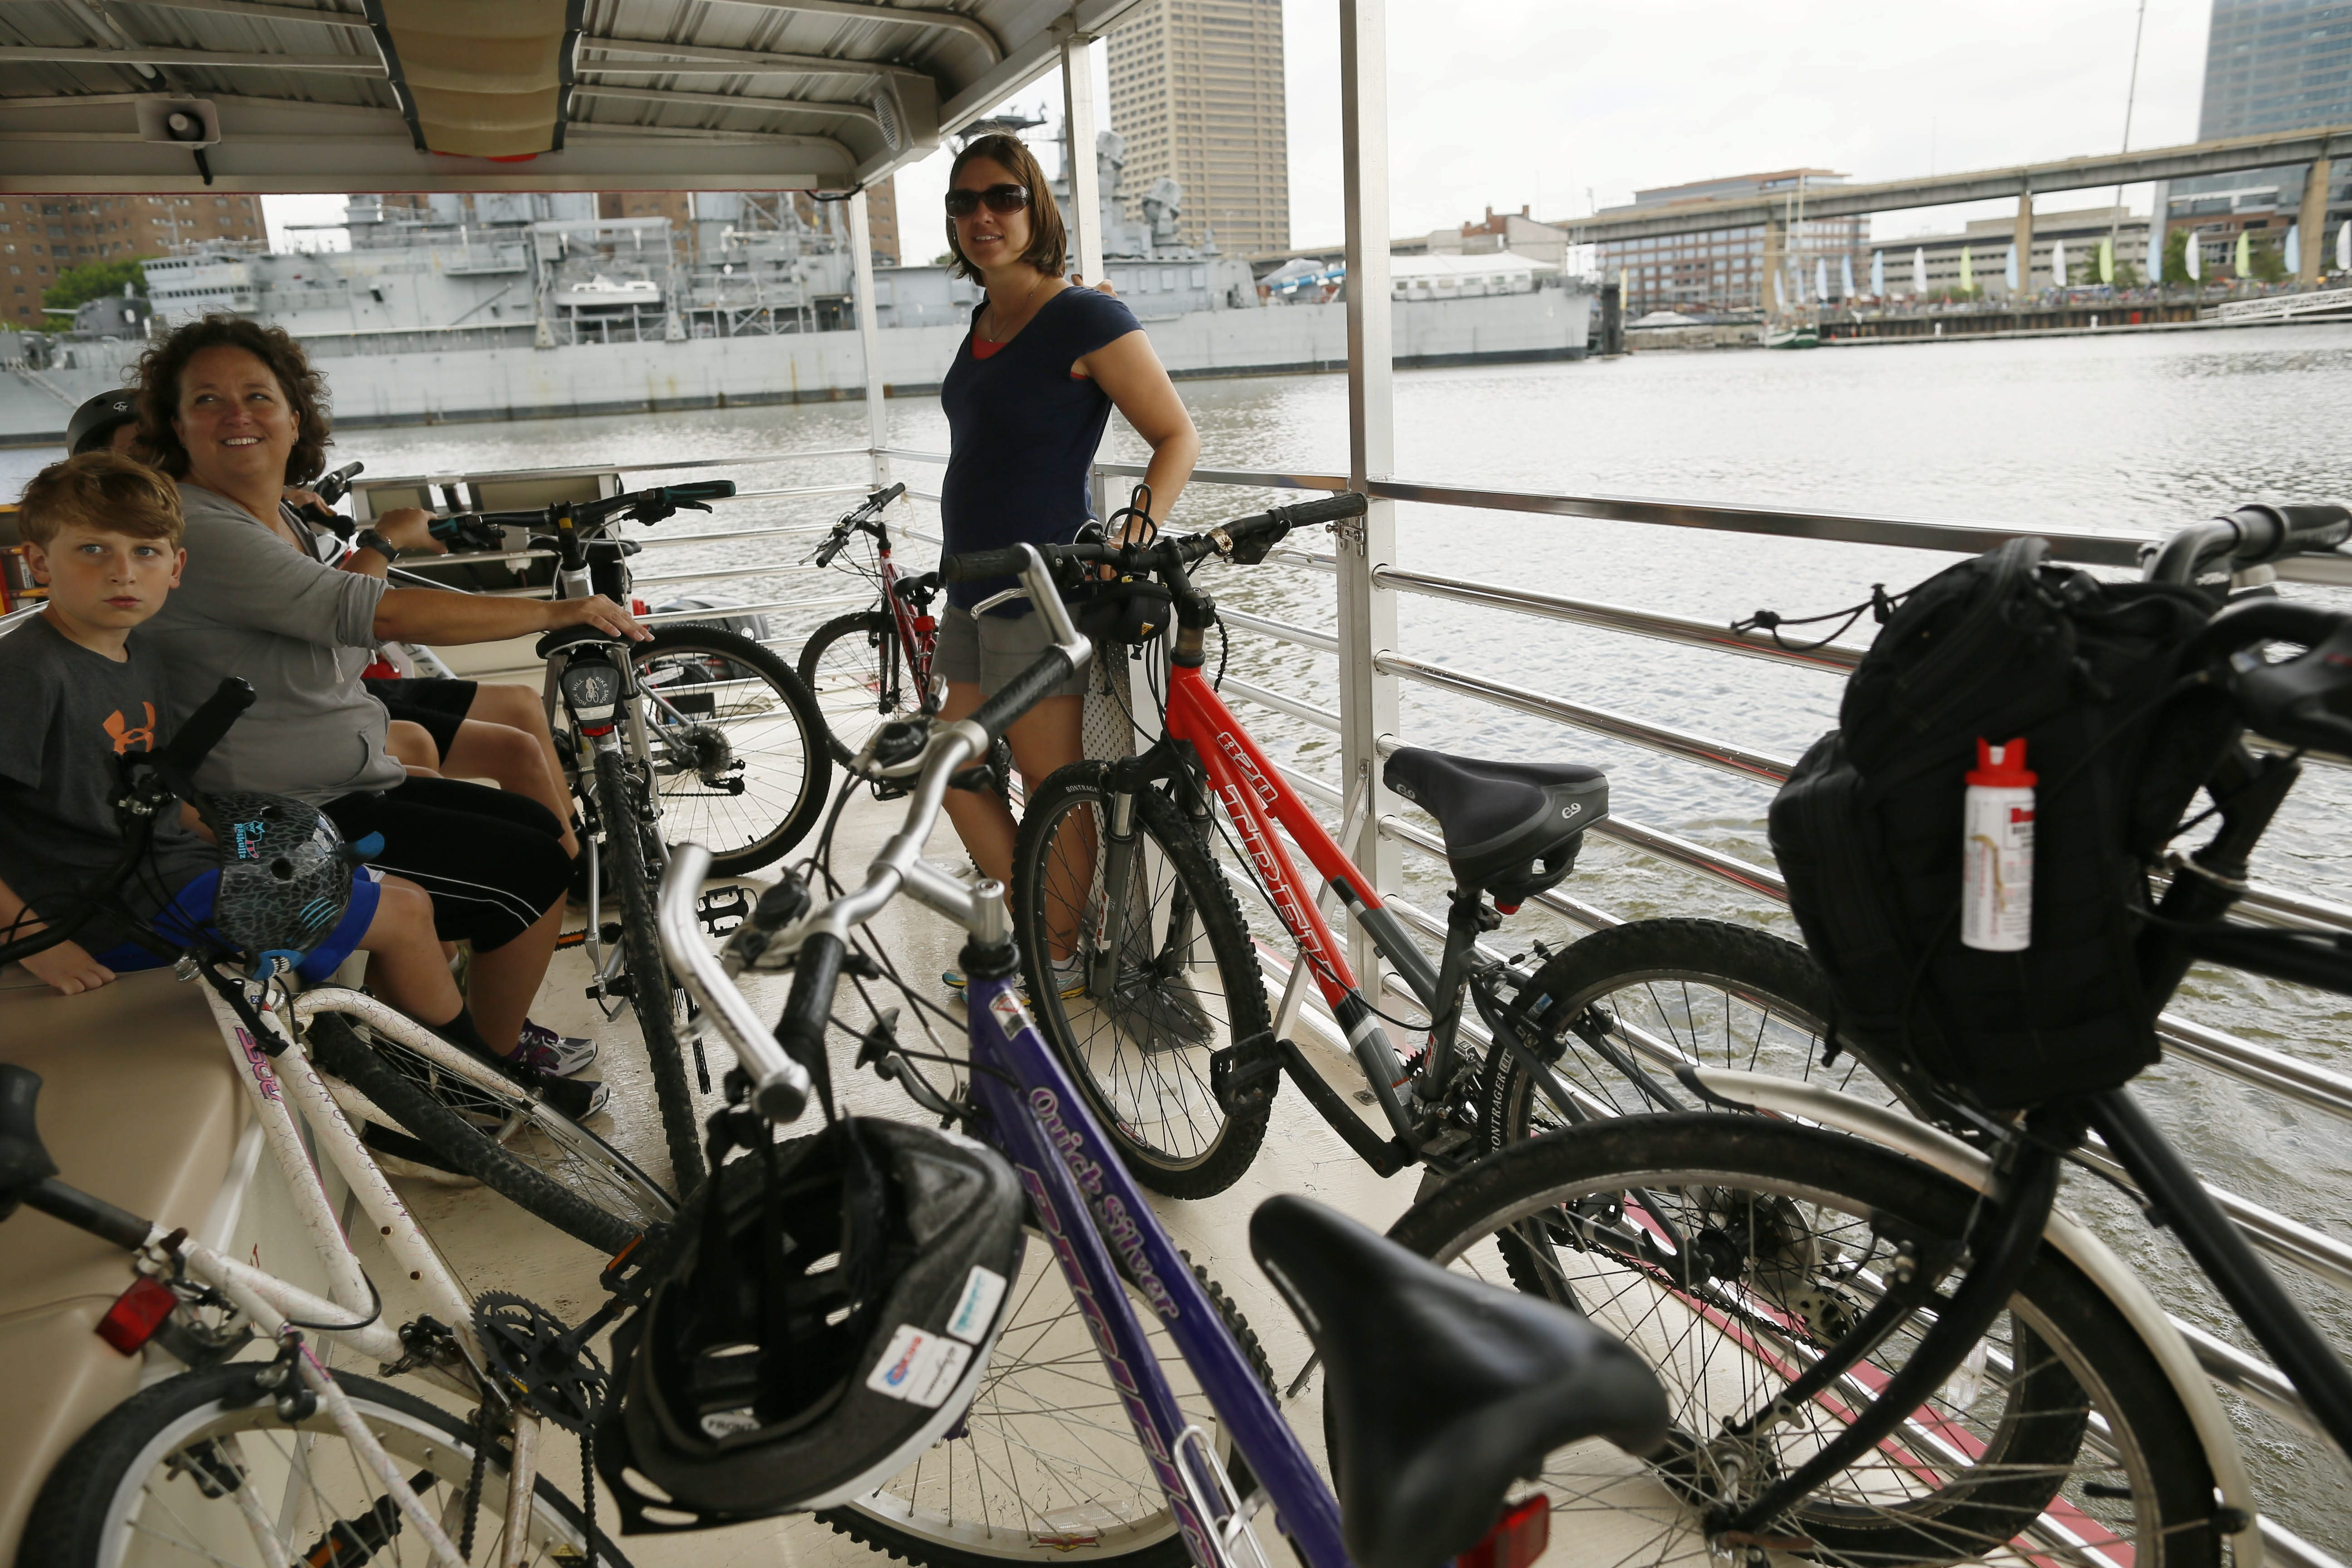 Use of the Queen City Bike Ferry, inaugurated last year, far exceeded expectations. The Erie Harbor Development Corp. needs to expand the service to meet the demand and avoid the risk of driving people away from Canalside.